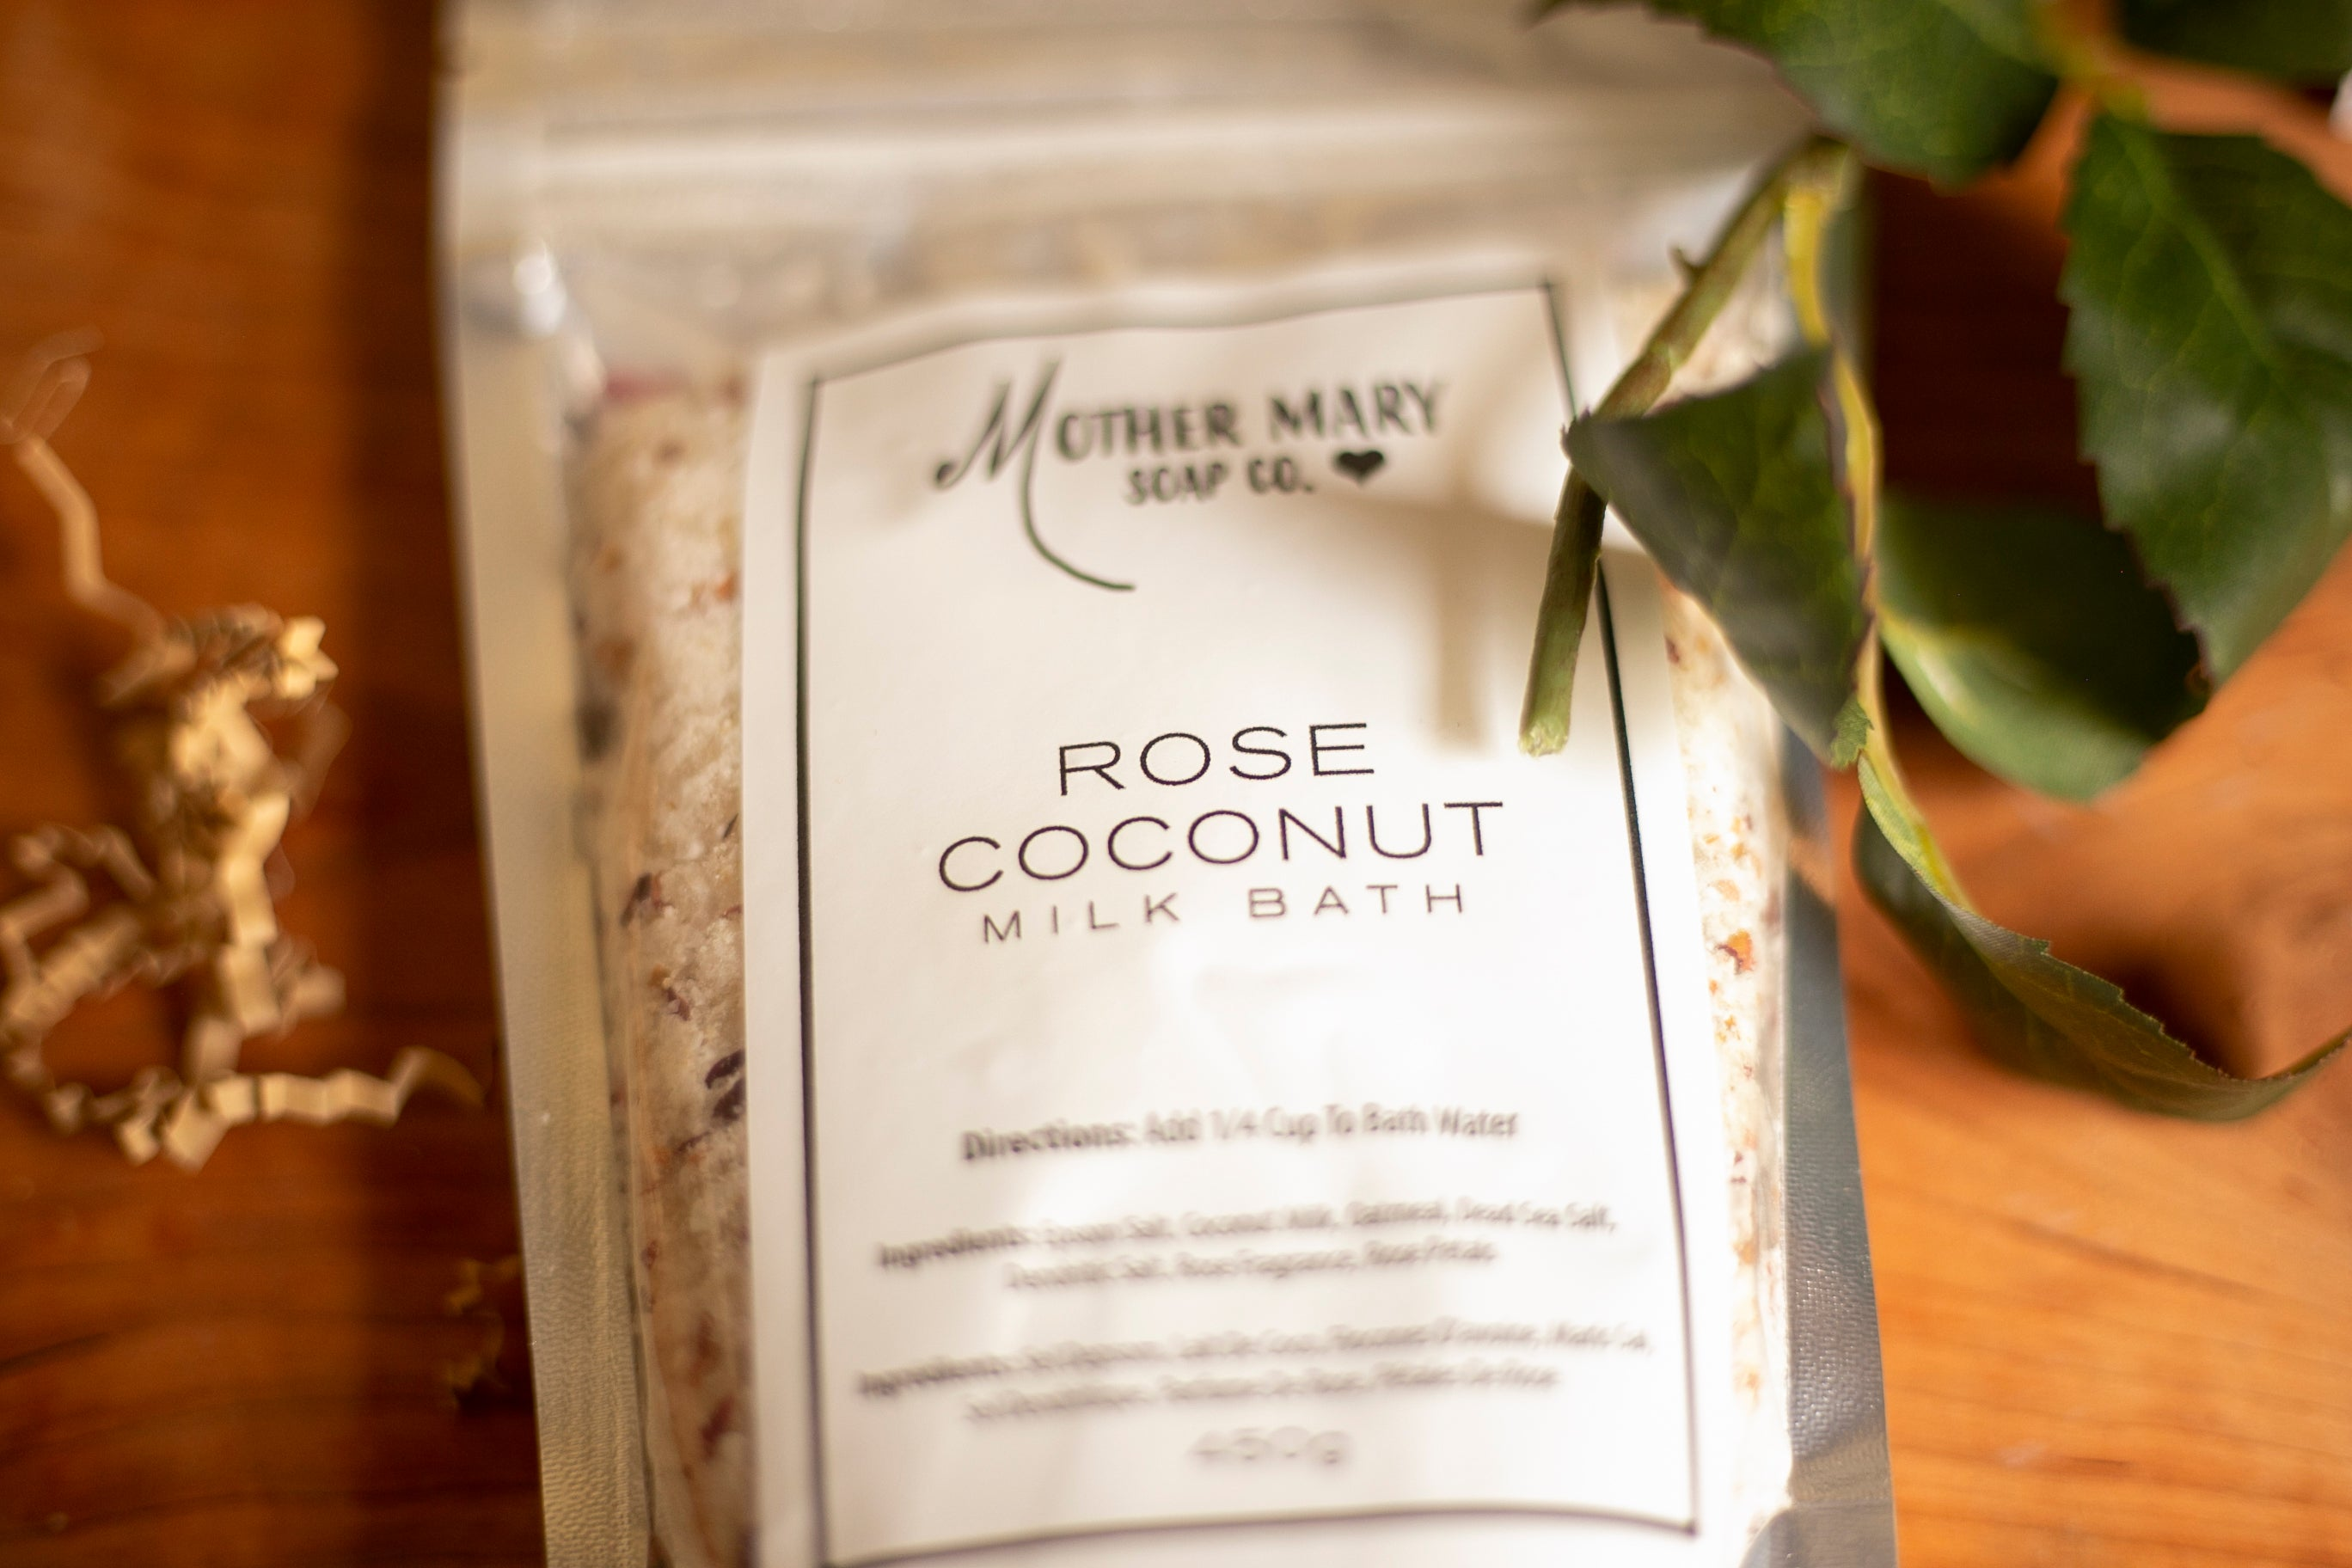 Rose Coconut Milk Bath